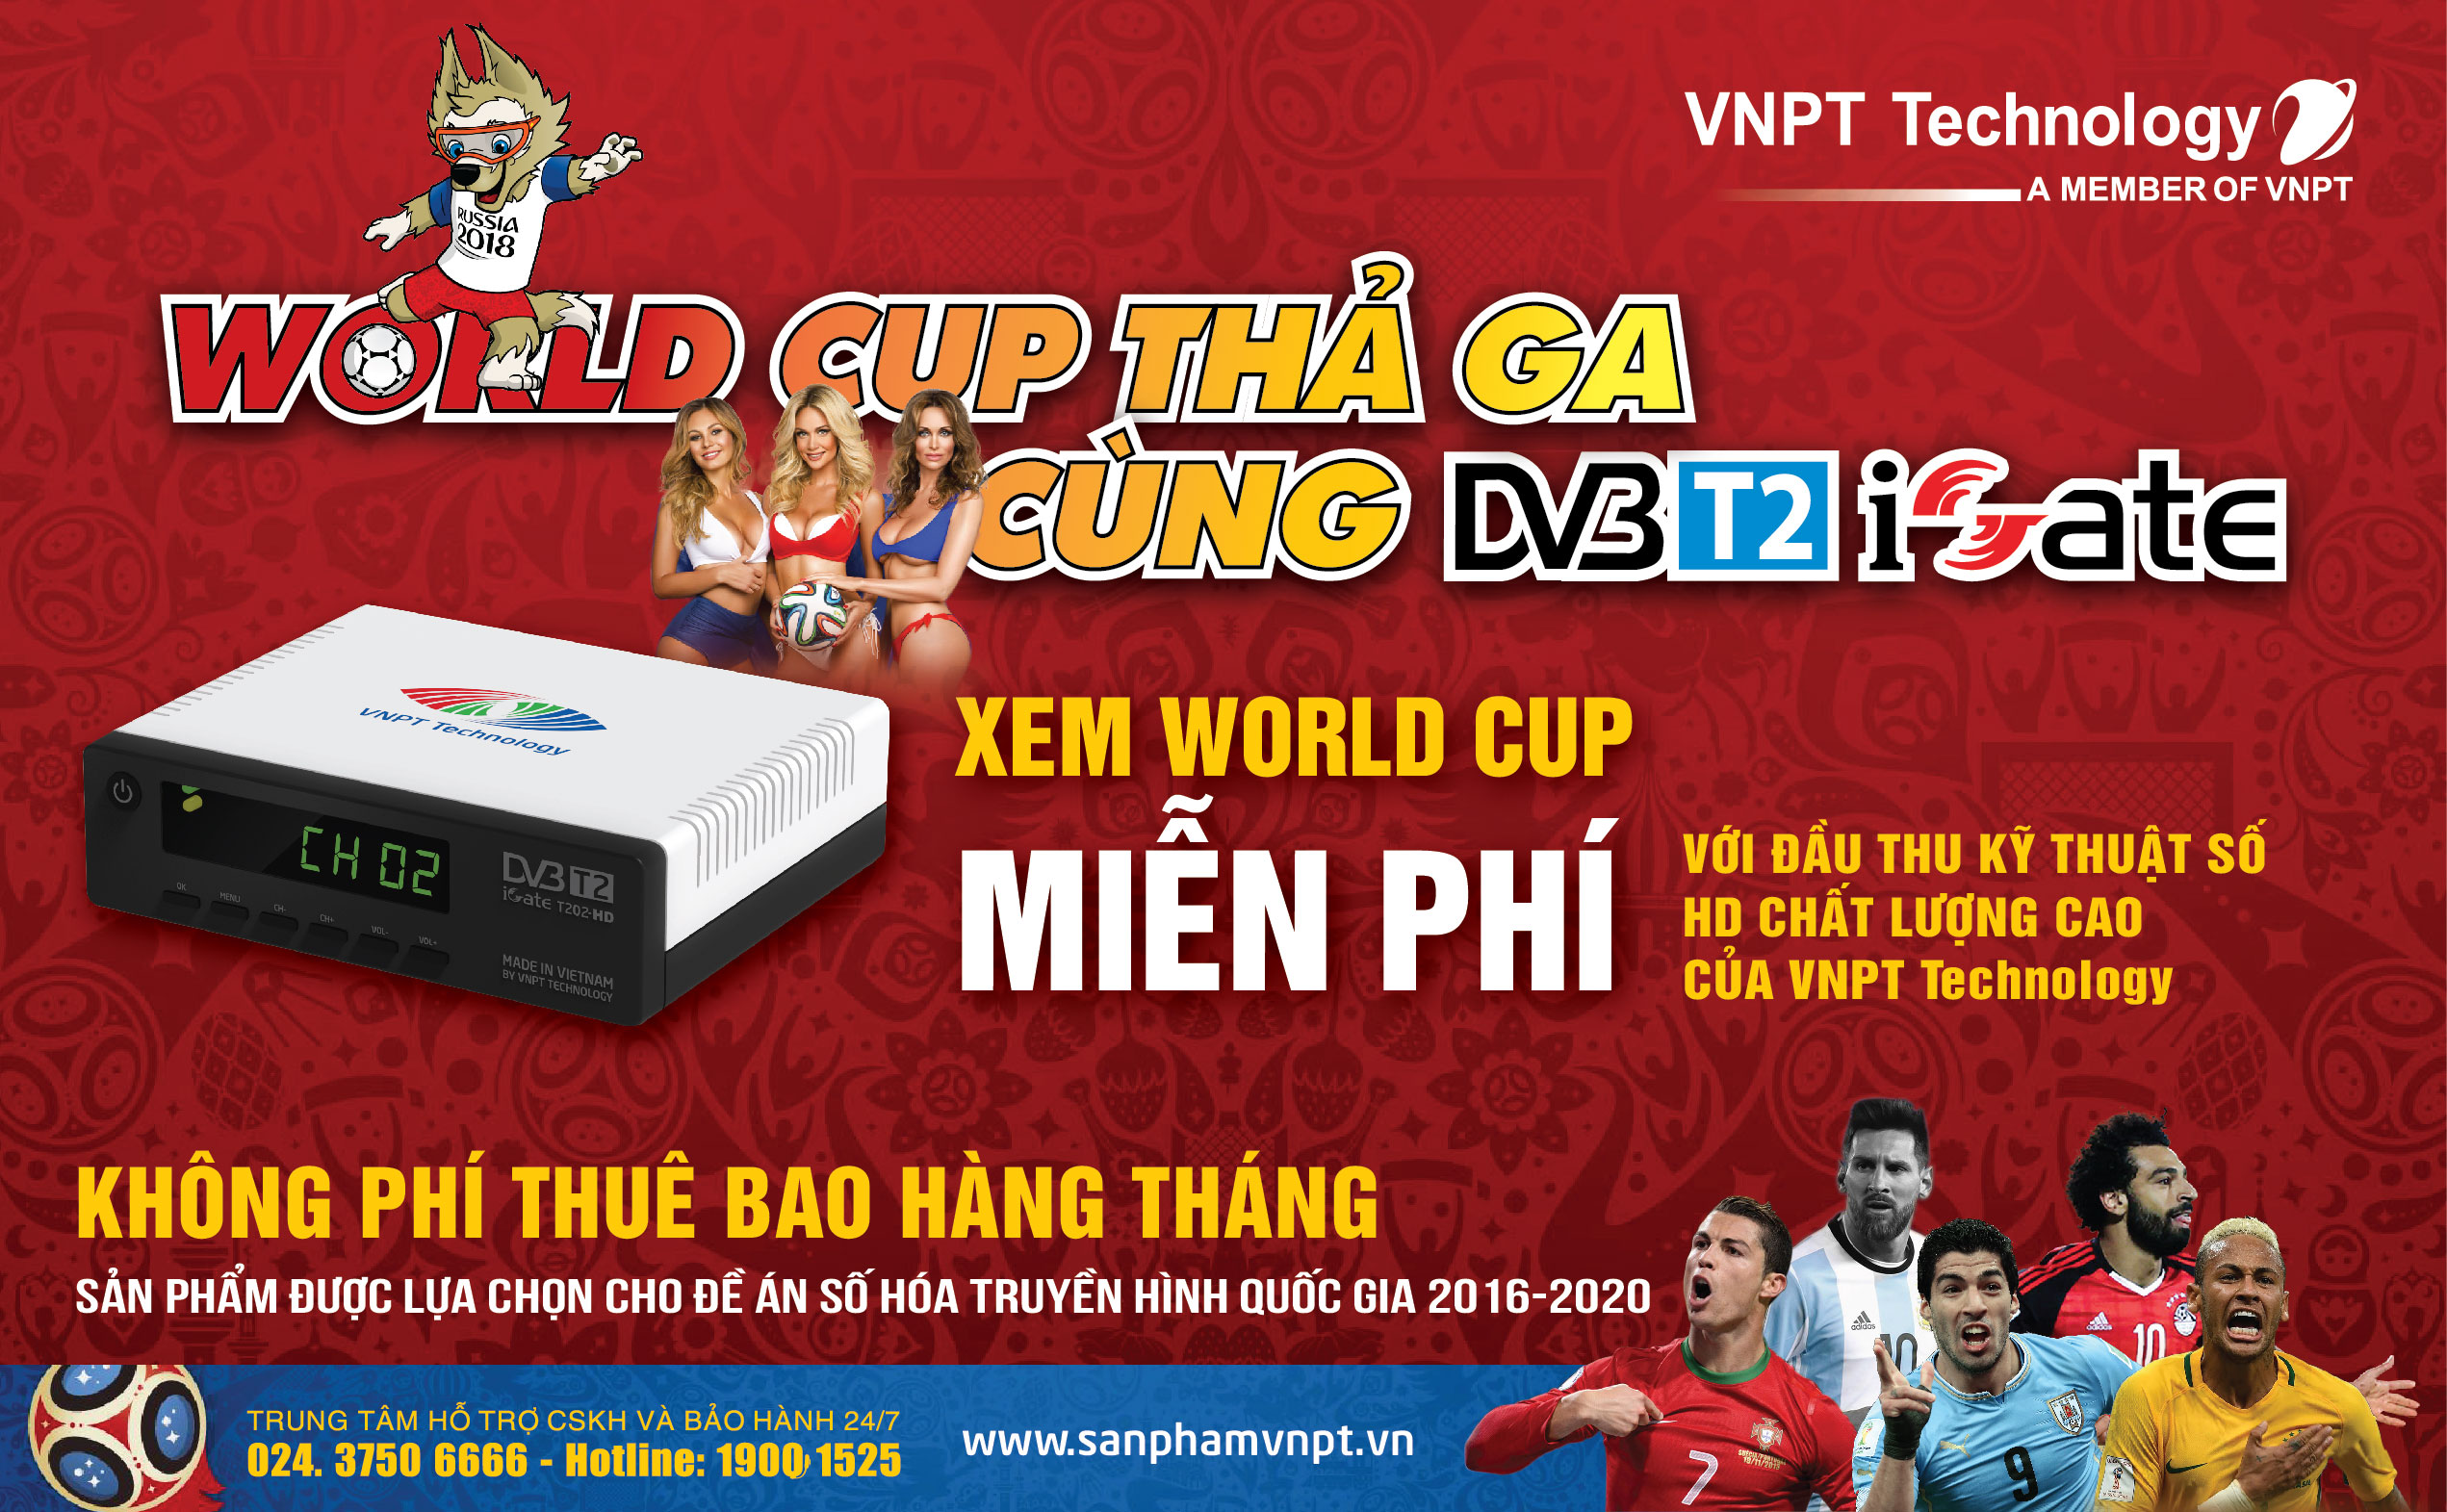 AT_World cup tha ga cung VNPT